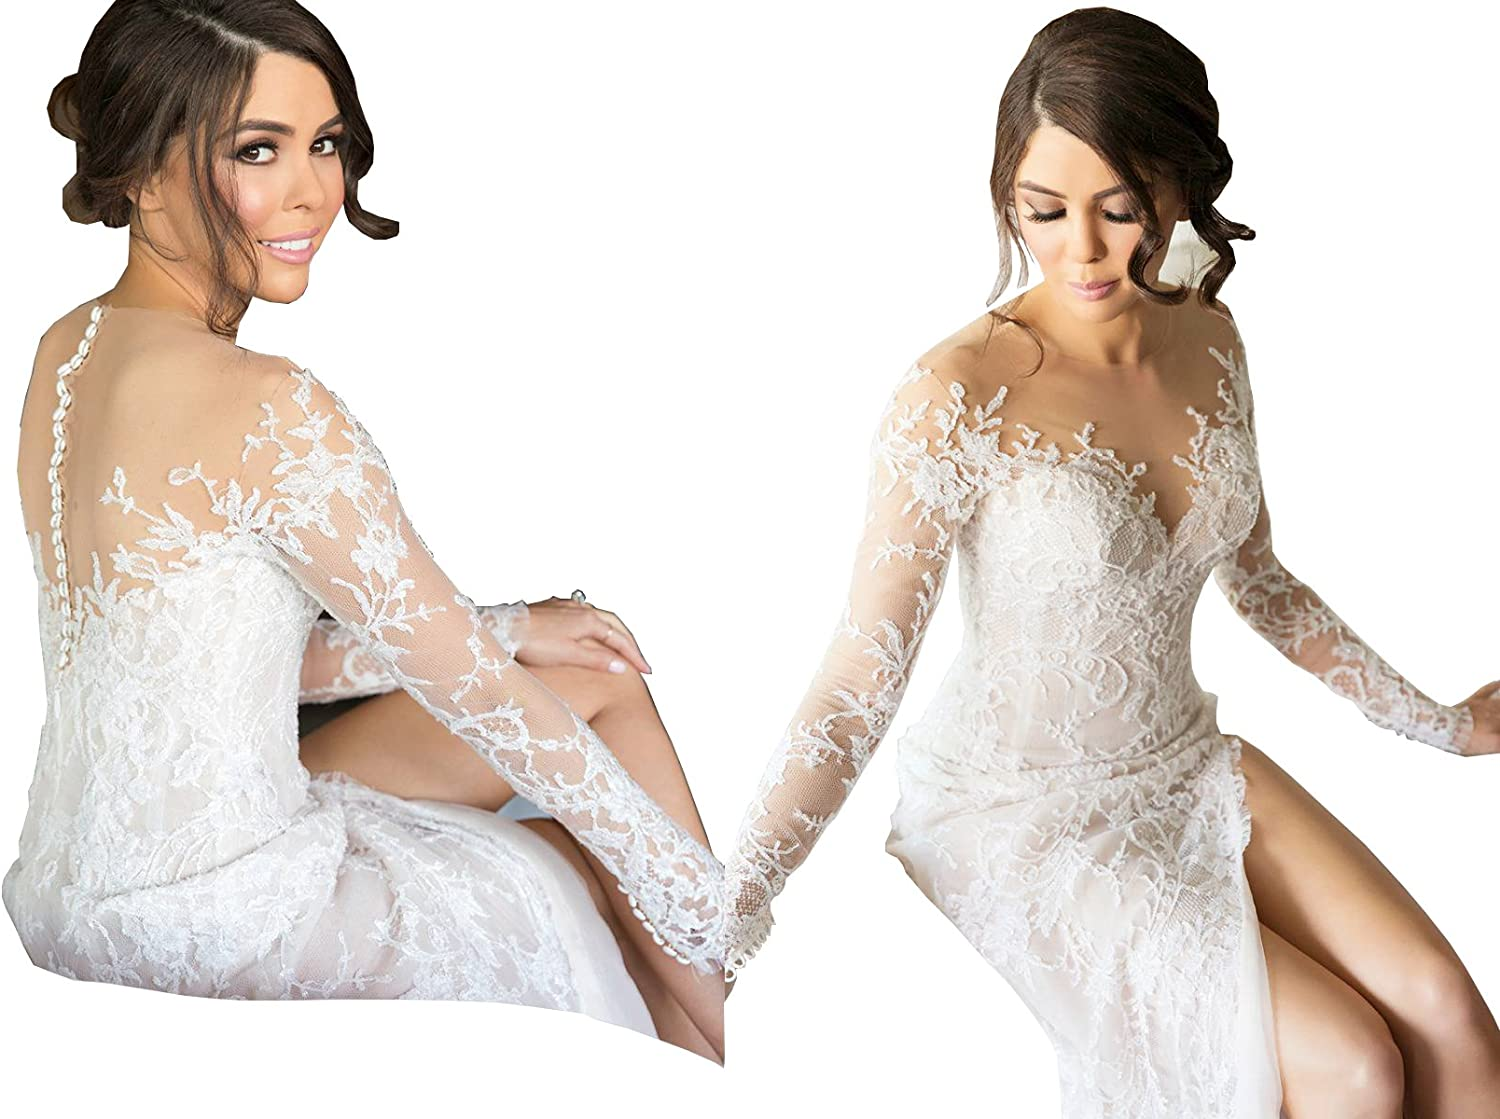 KissBridal Illusion Neck Long Sleeves Over Skirt Lace Applique Wedding Gown